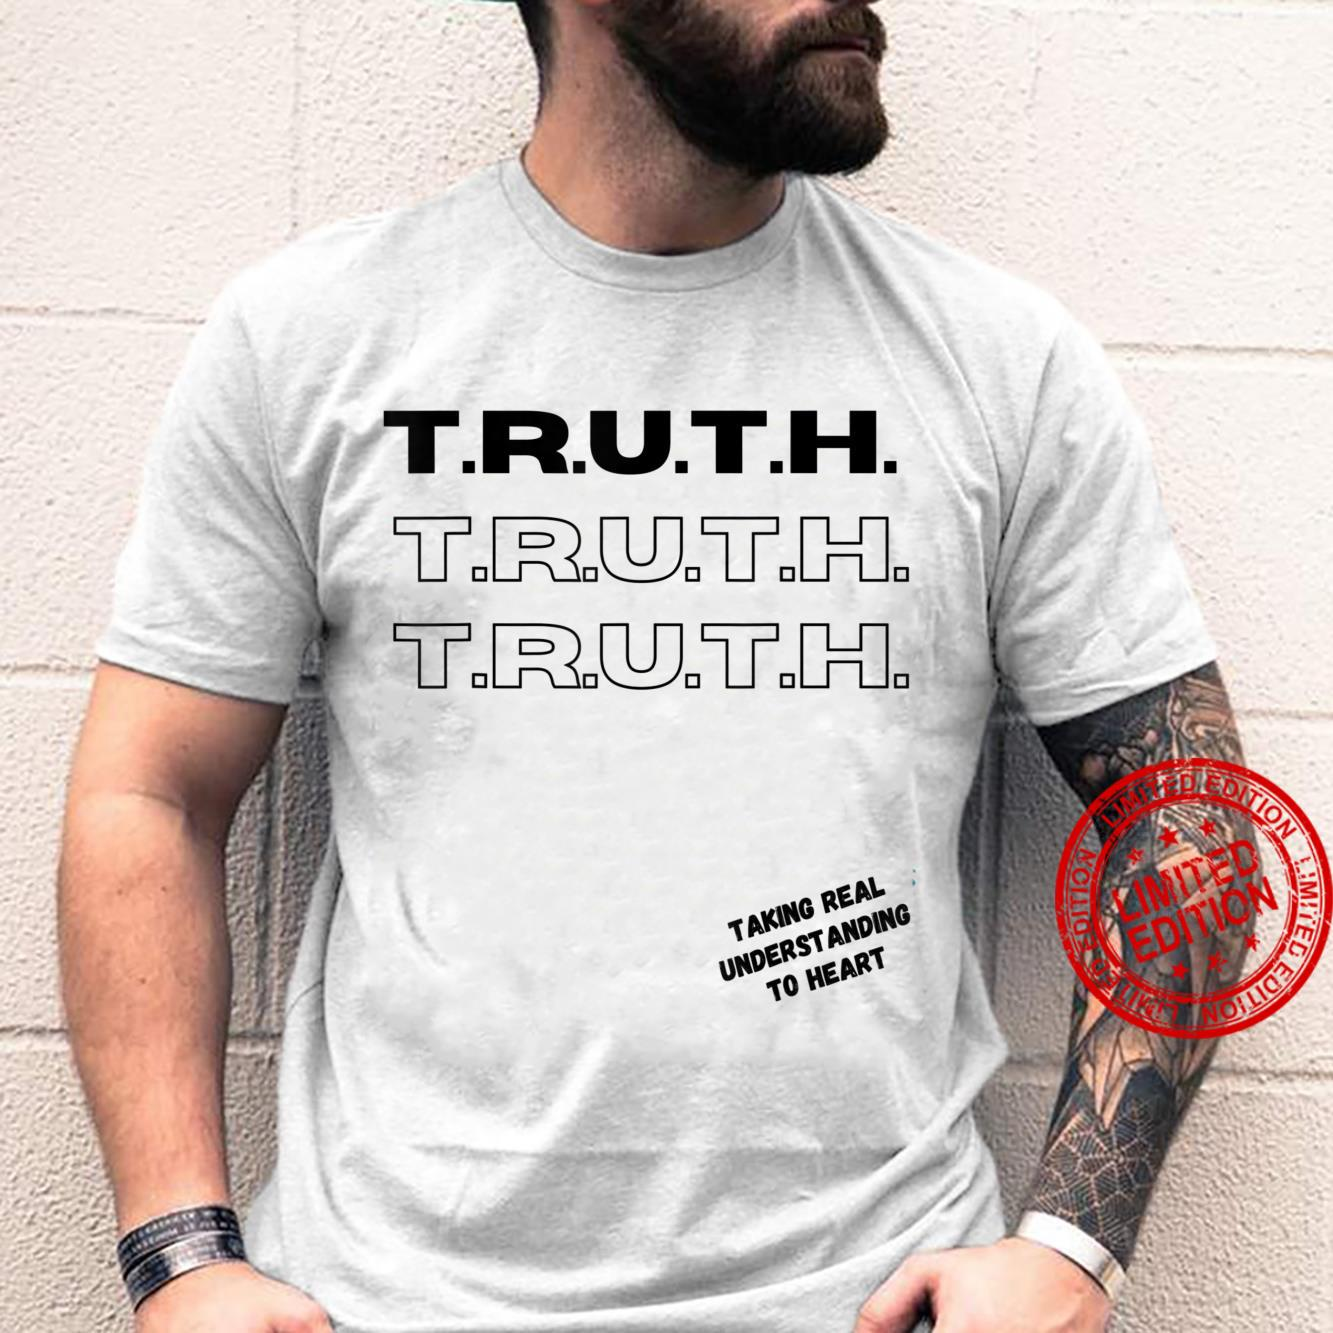 TRUTH Taking Real Understanding To Heart Shirt